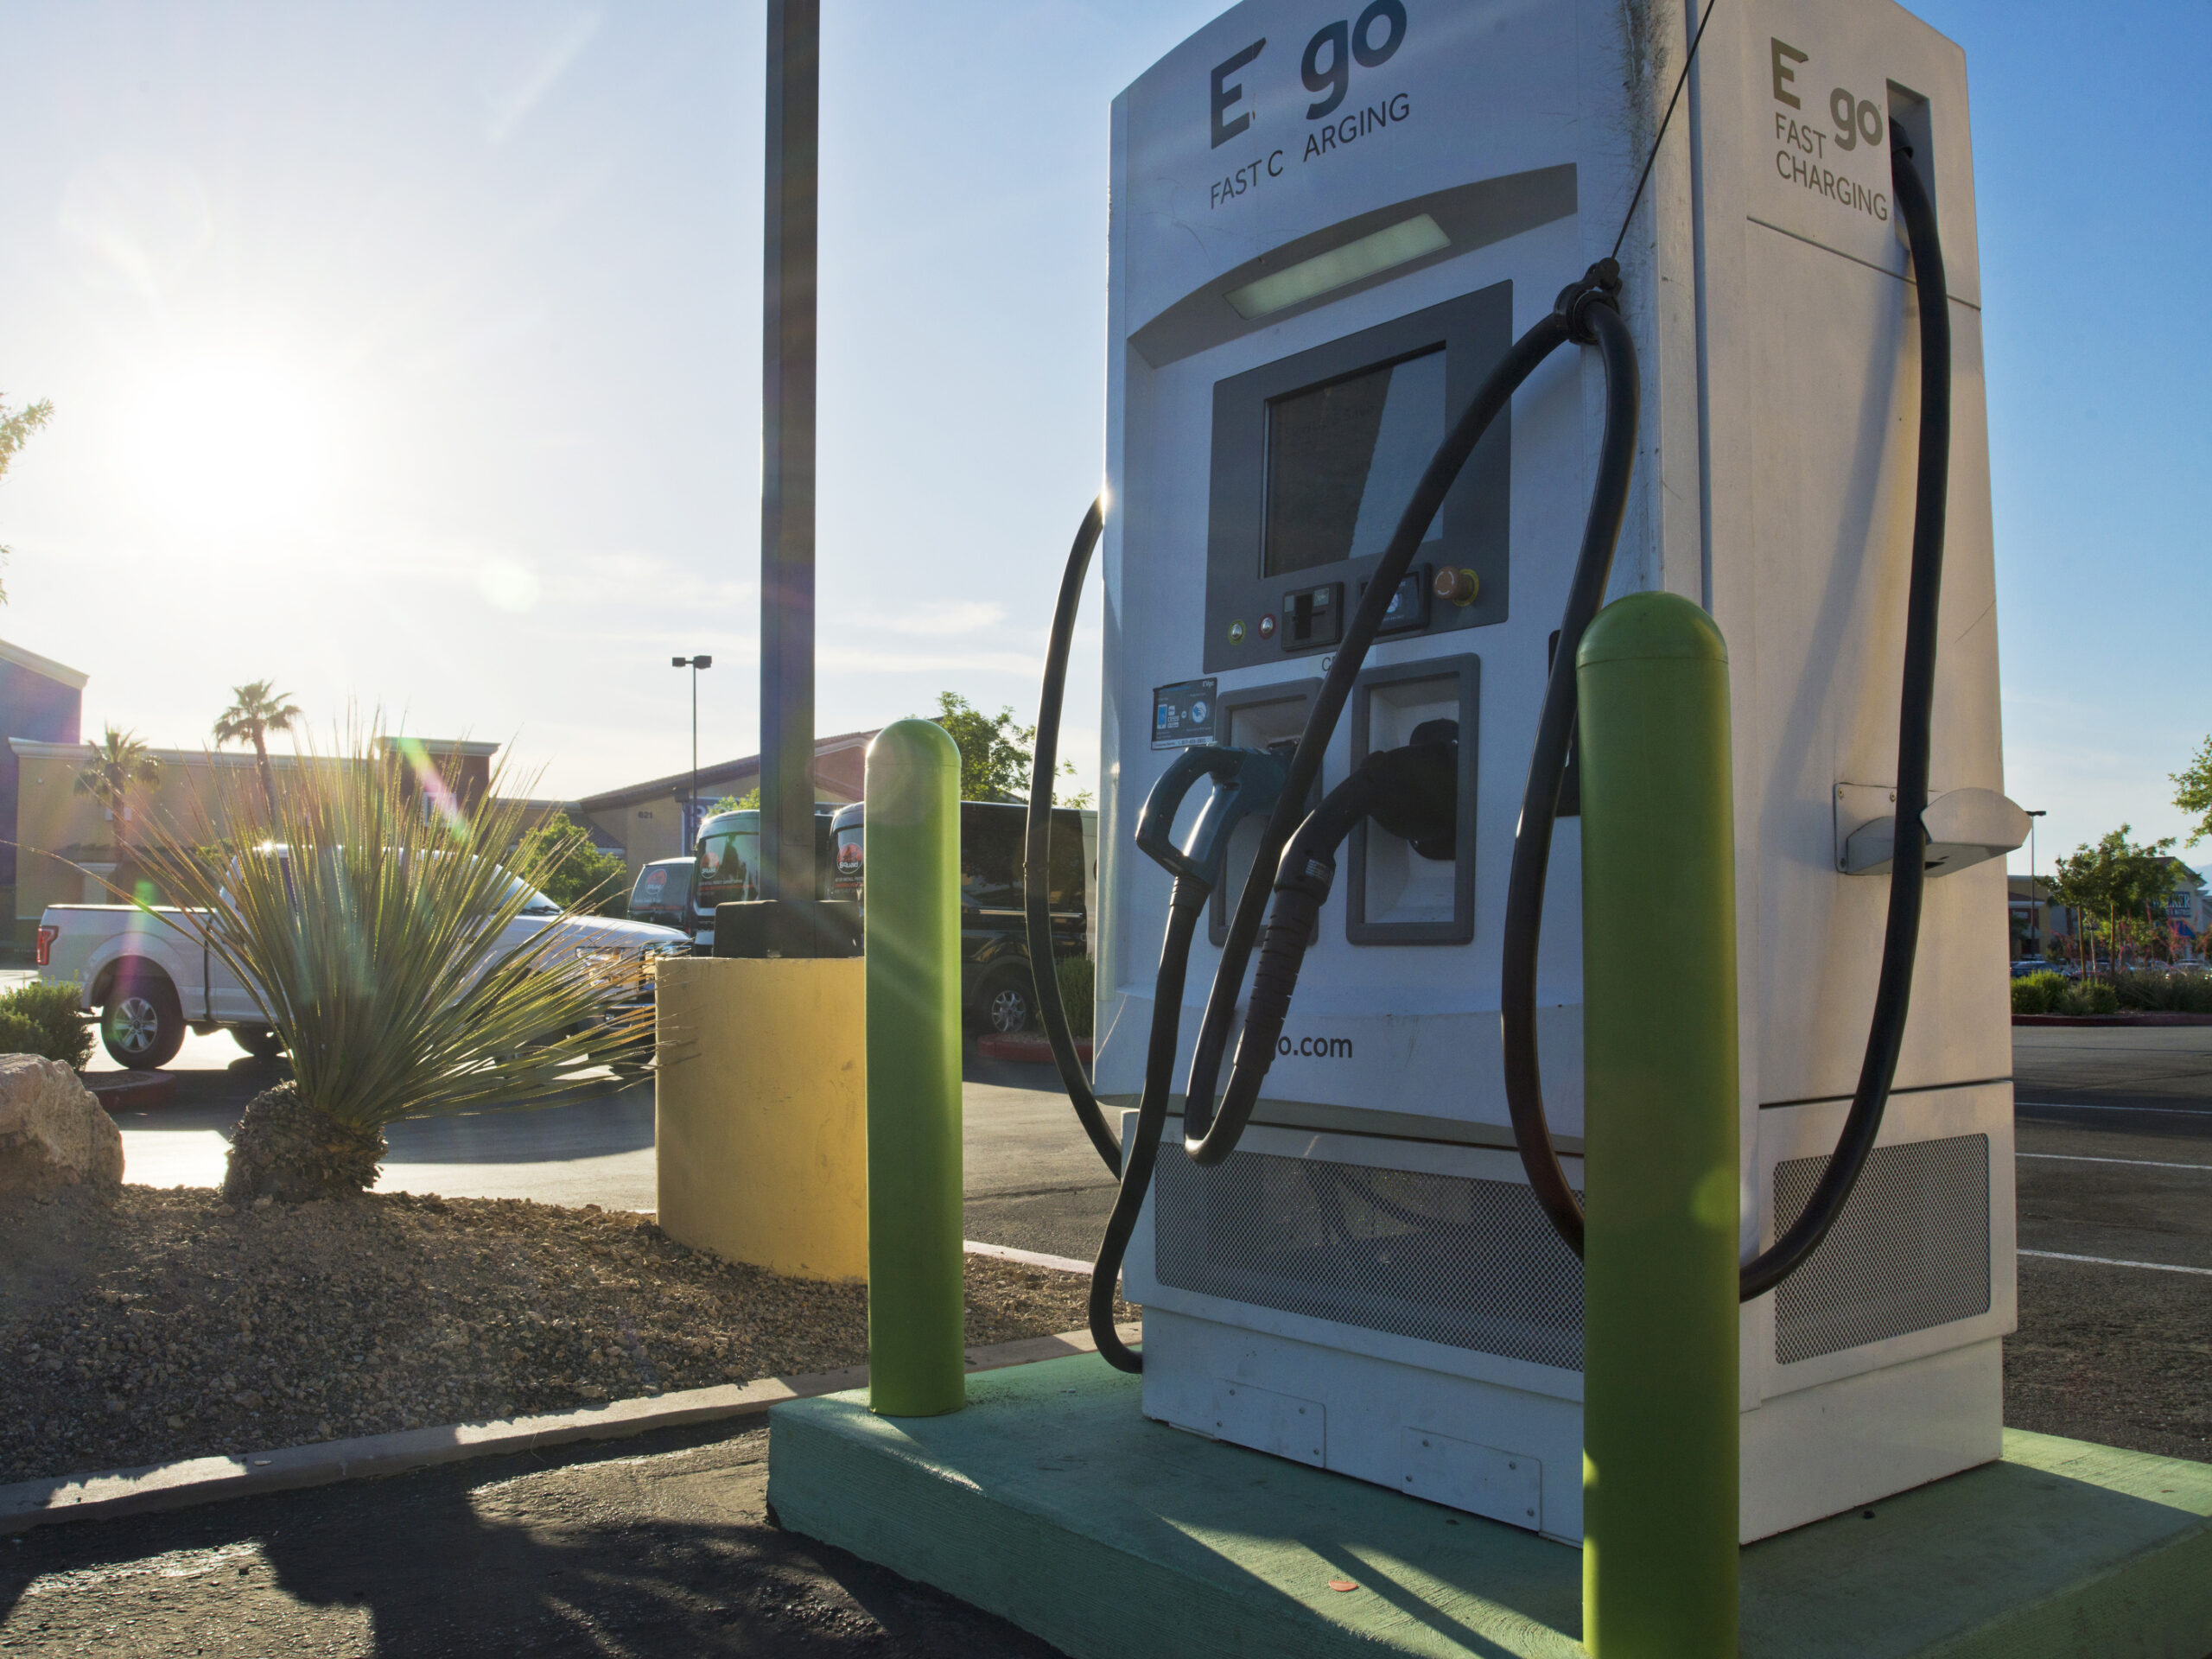 Report: Electric Vehicle Cost-Benefit Analysis